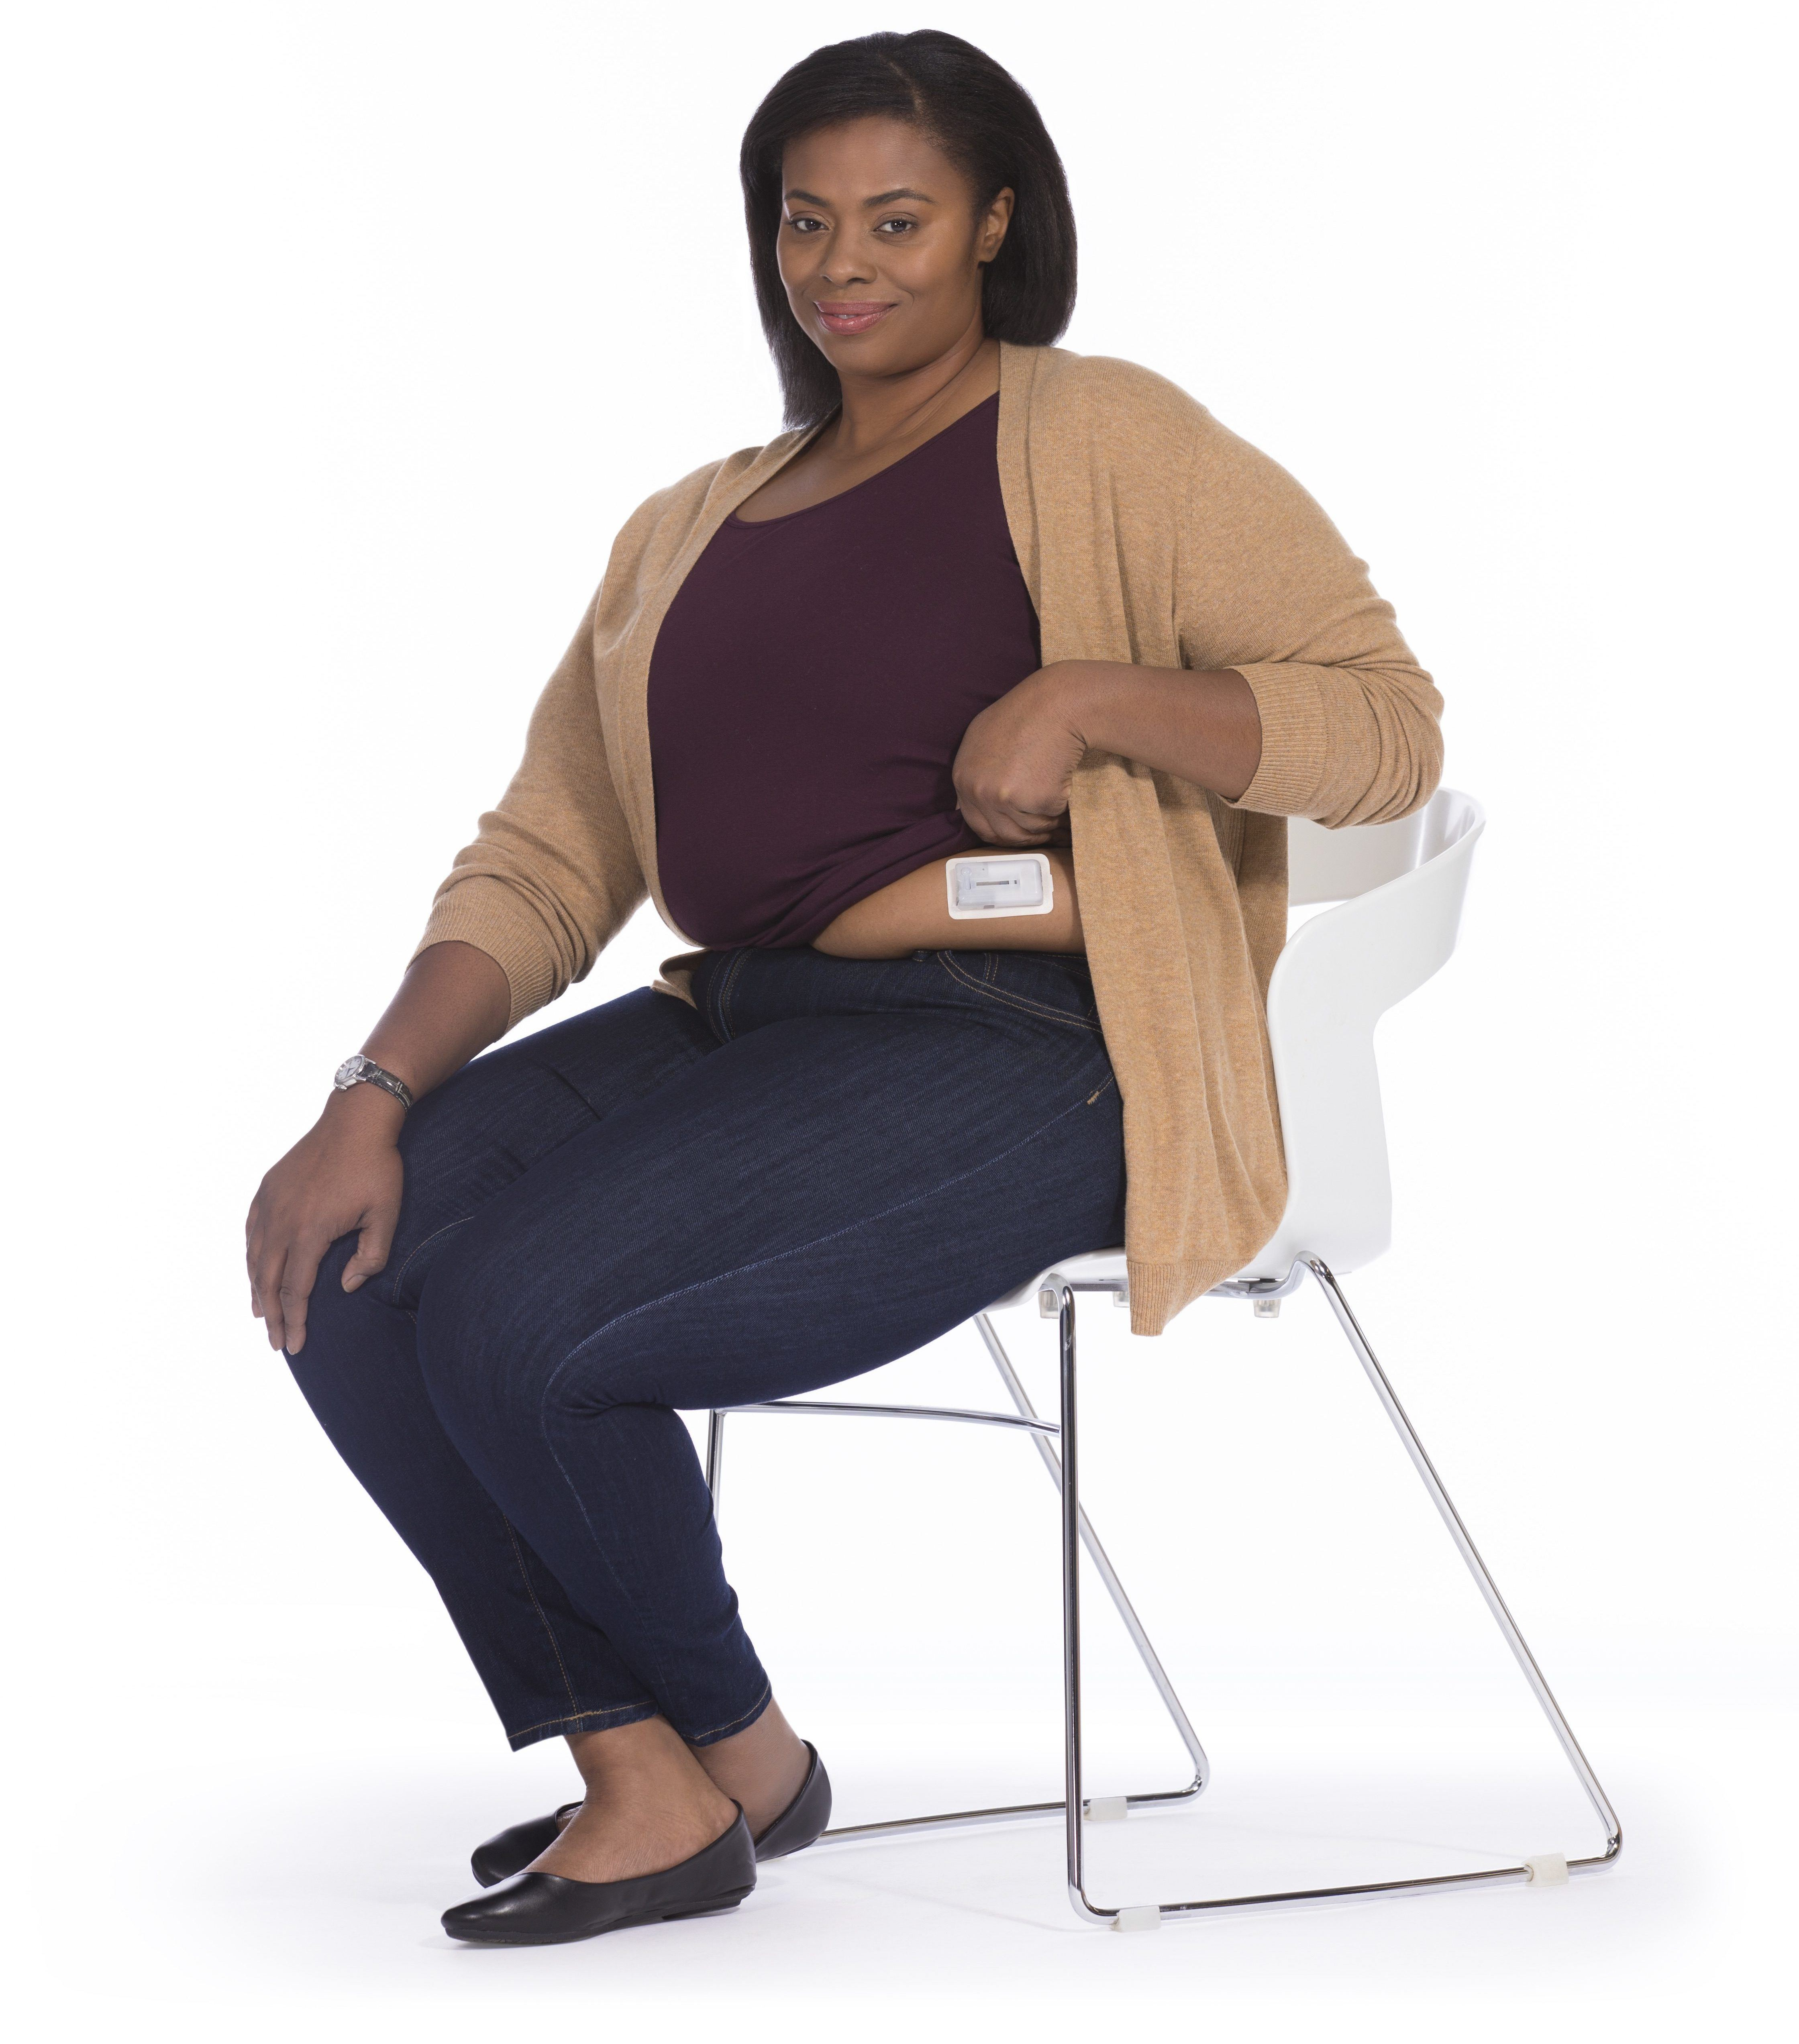 Woman modeling the V-Go® device